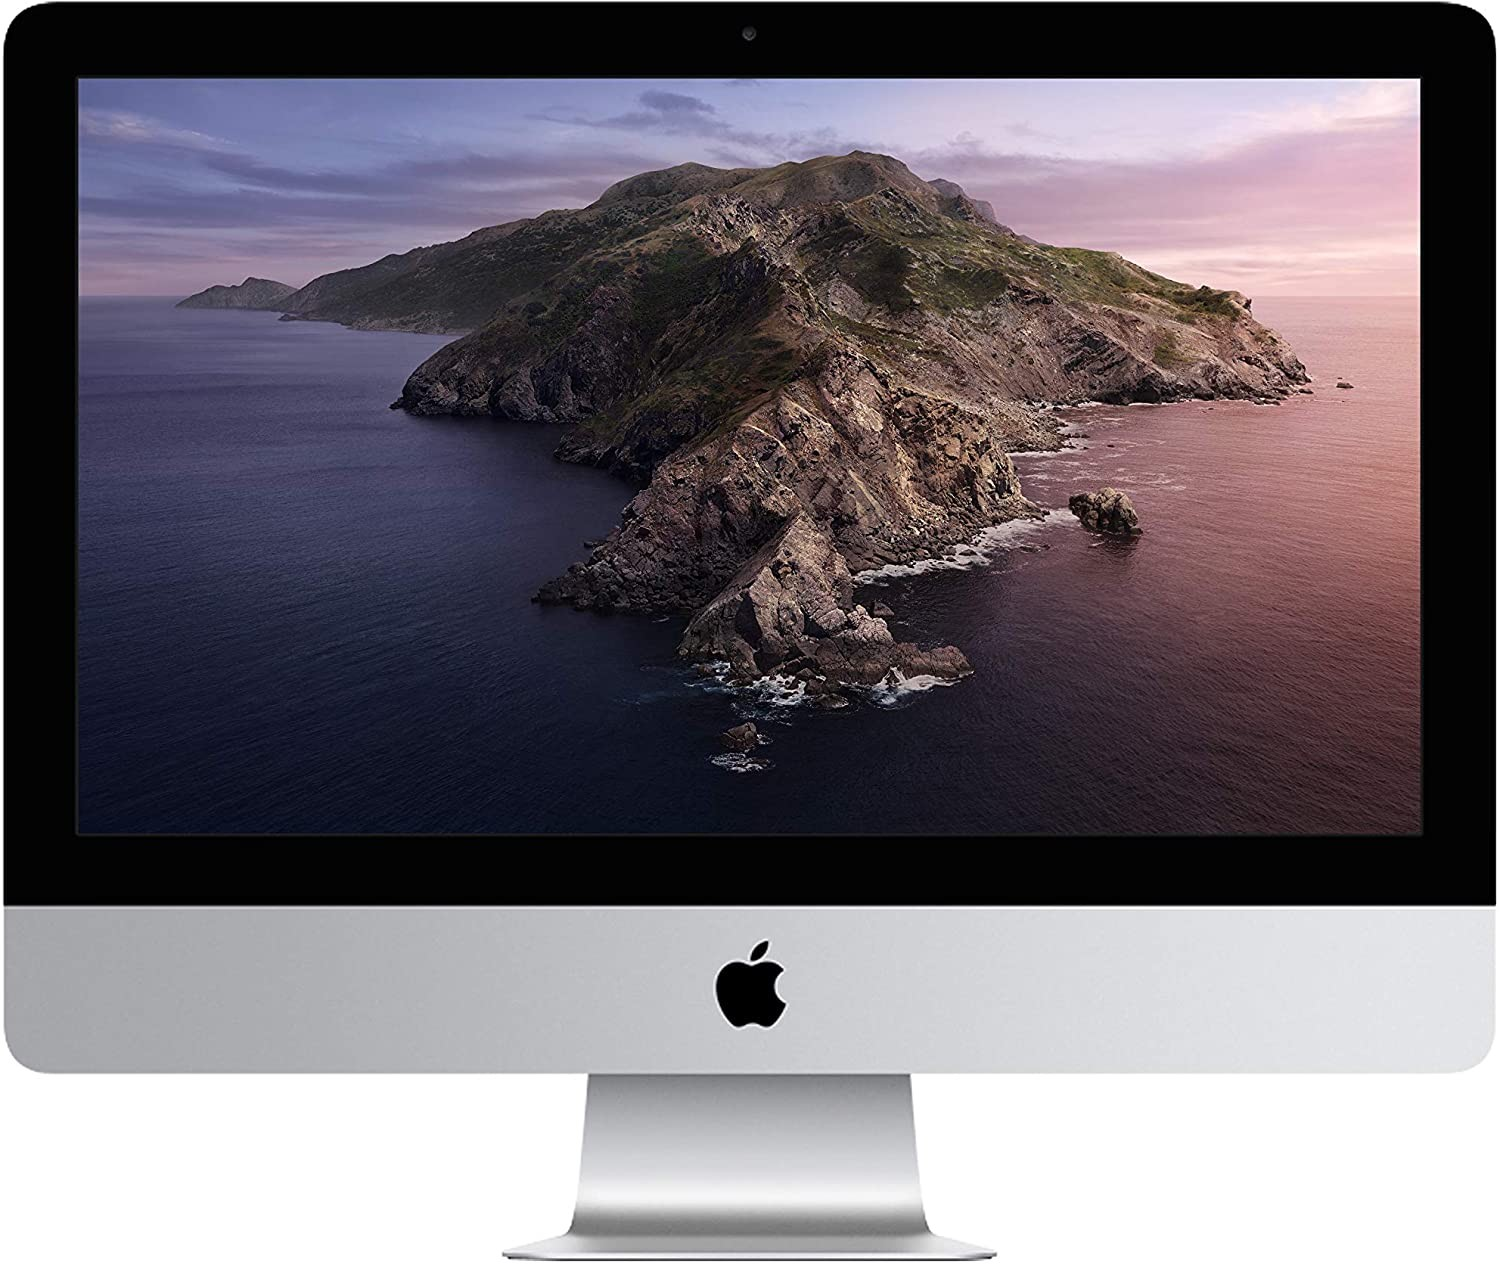 Apple iMac 21.5' - 2.3GHz Dual-Core Processor with Turbo Boost up to 3.6GHz 256GB Storage